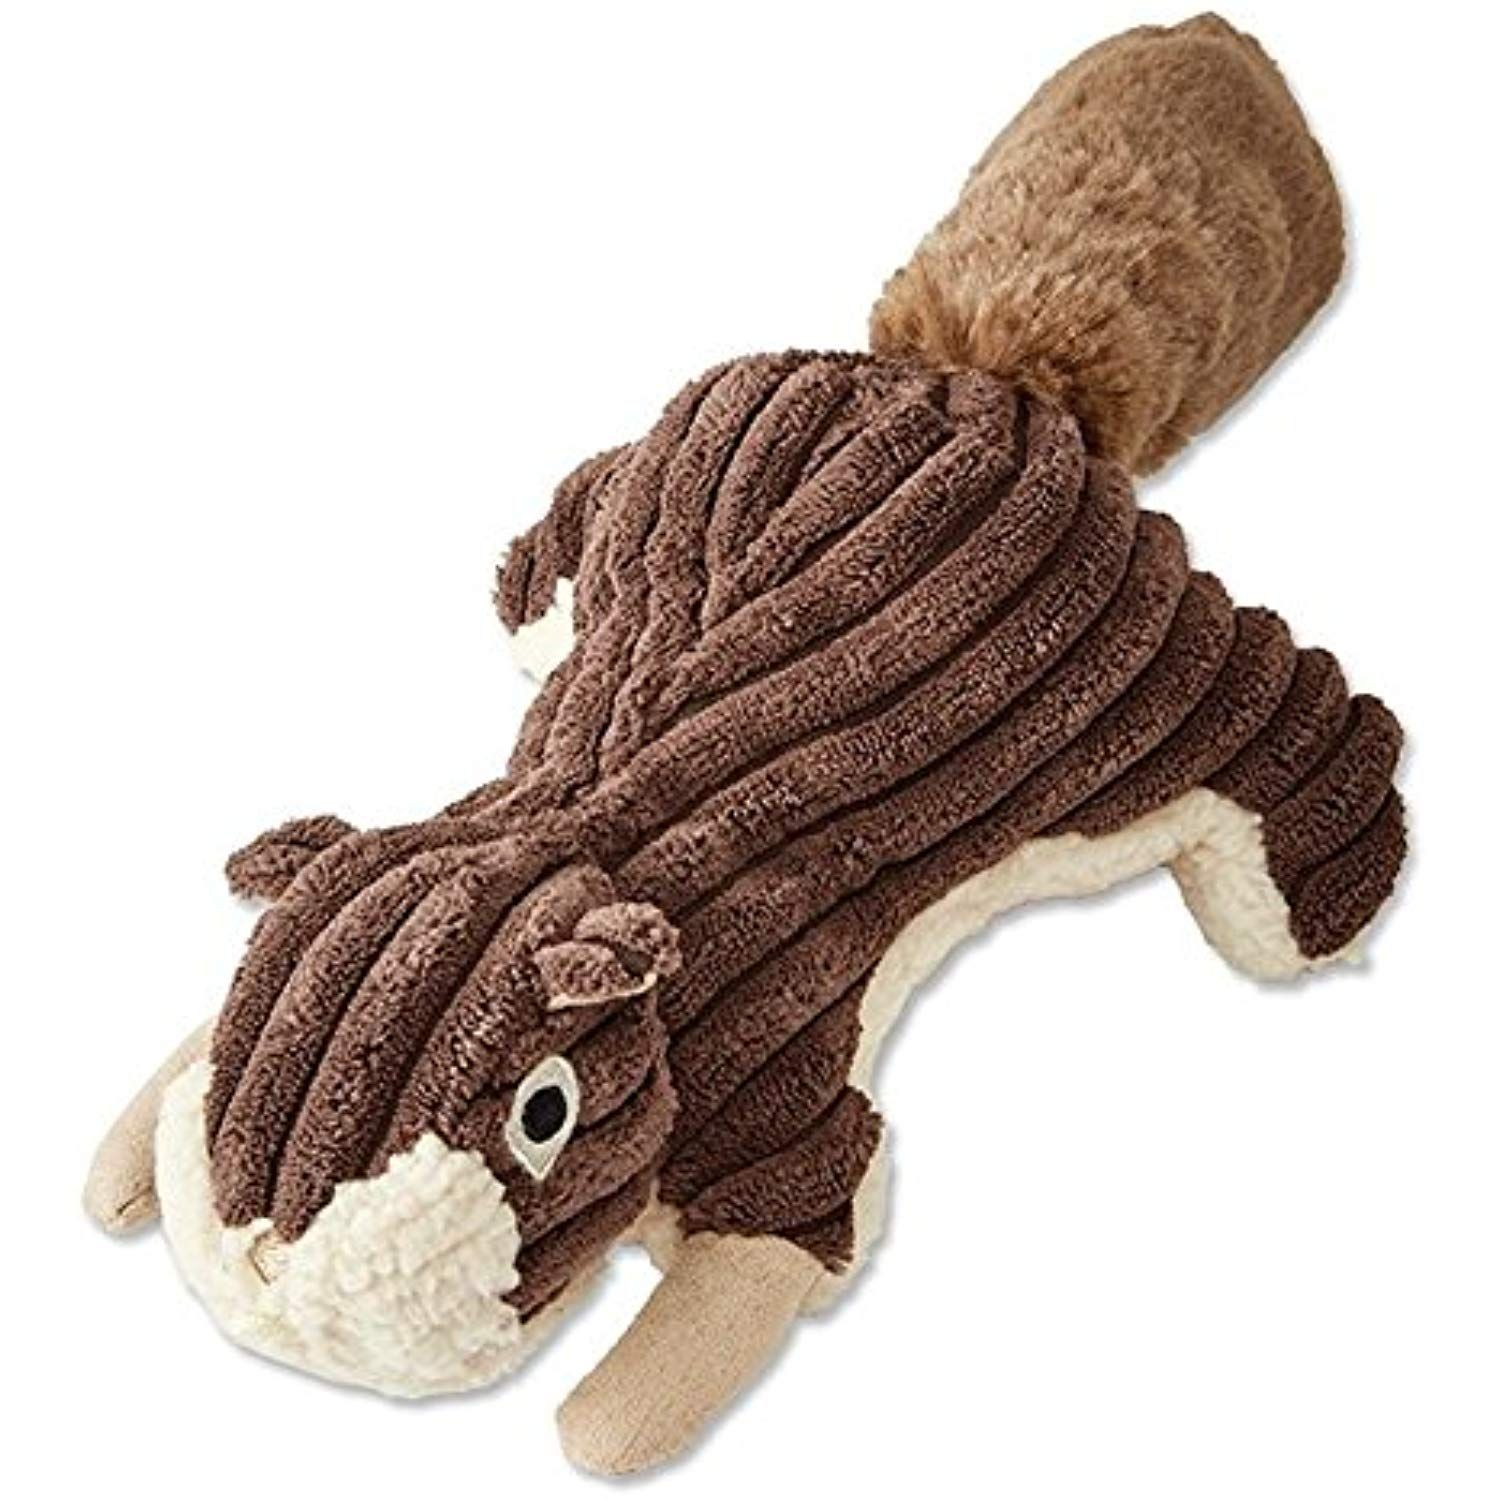 Orvis Animal Squeaker Toys, Squirrel ** Check out the